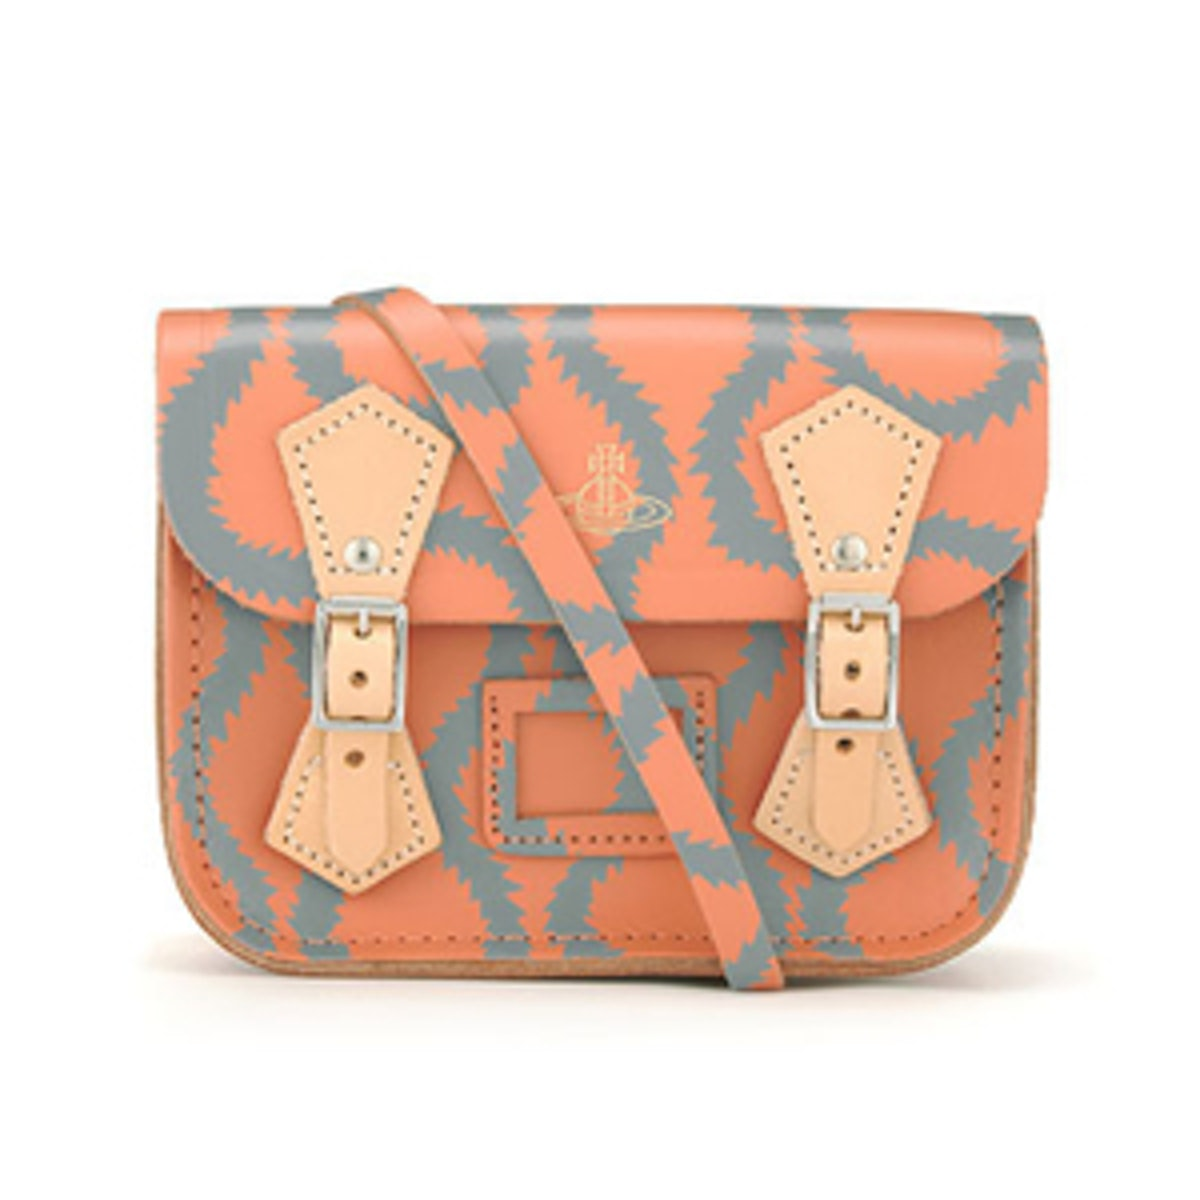 Coral/Gray Squiggle Tiny Satchel